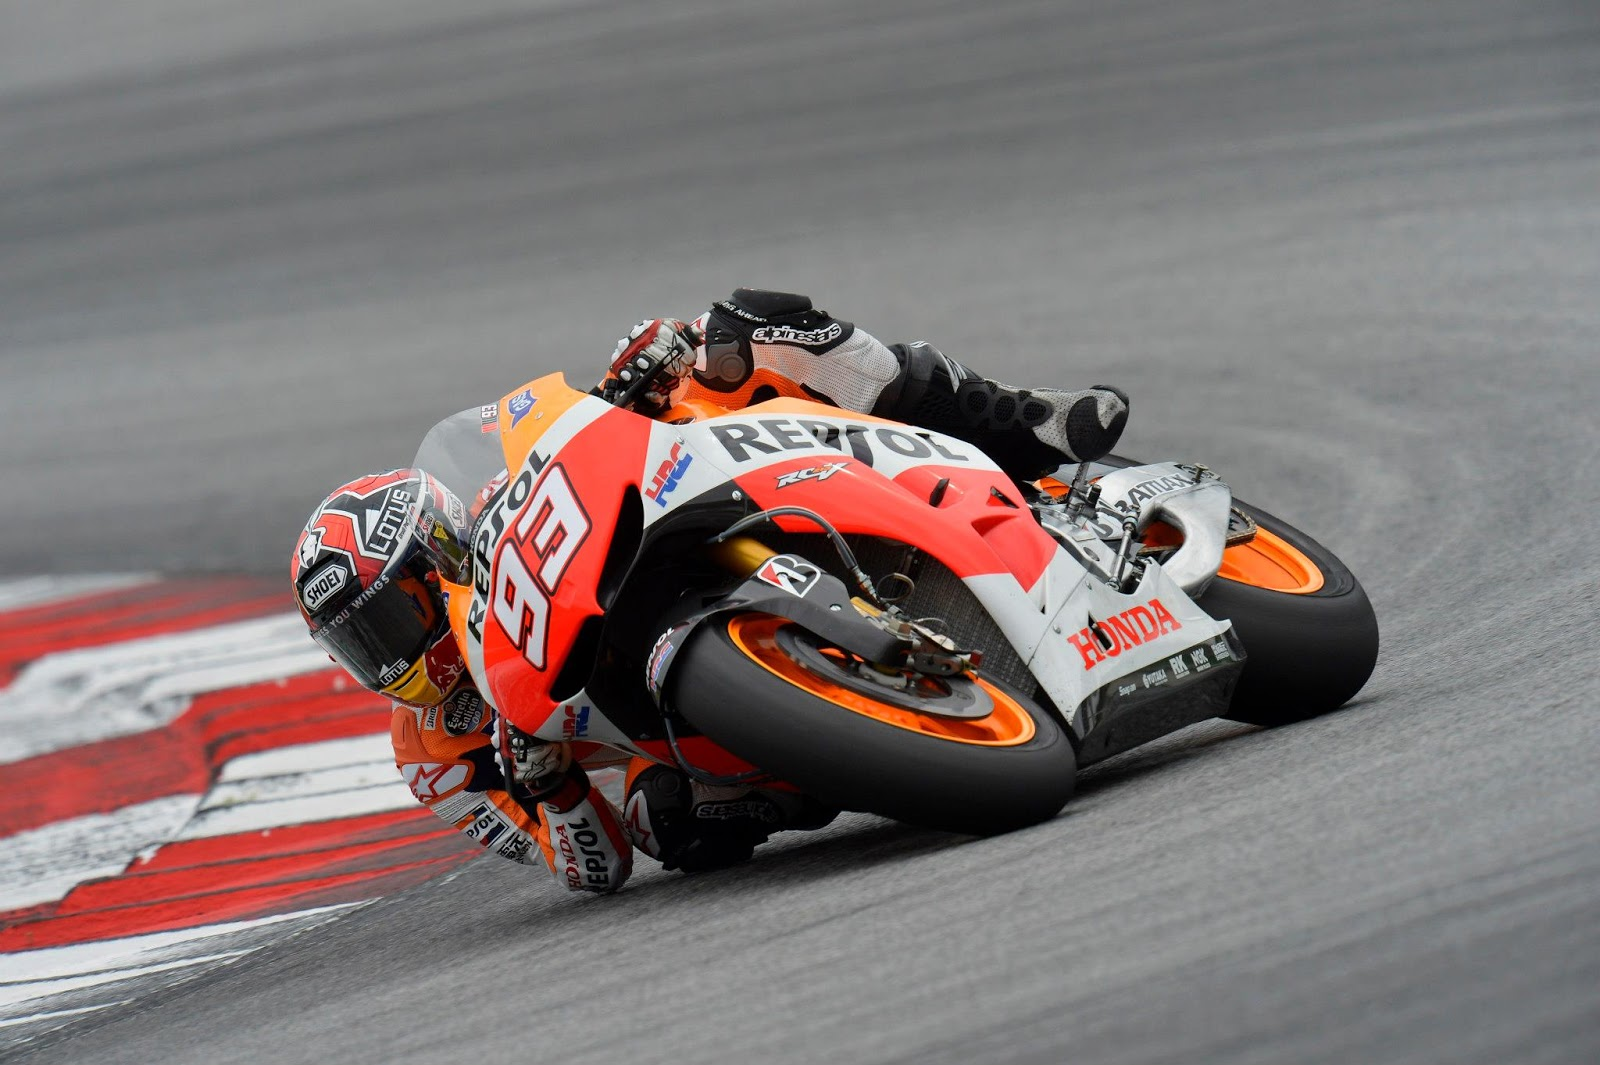 Marc Marquez MotoGP 2013 Wallpaper High Definition